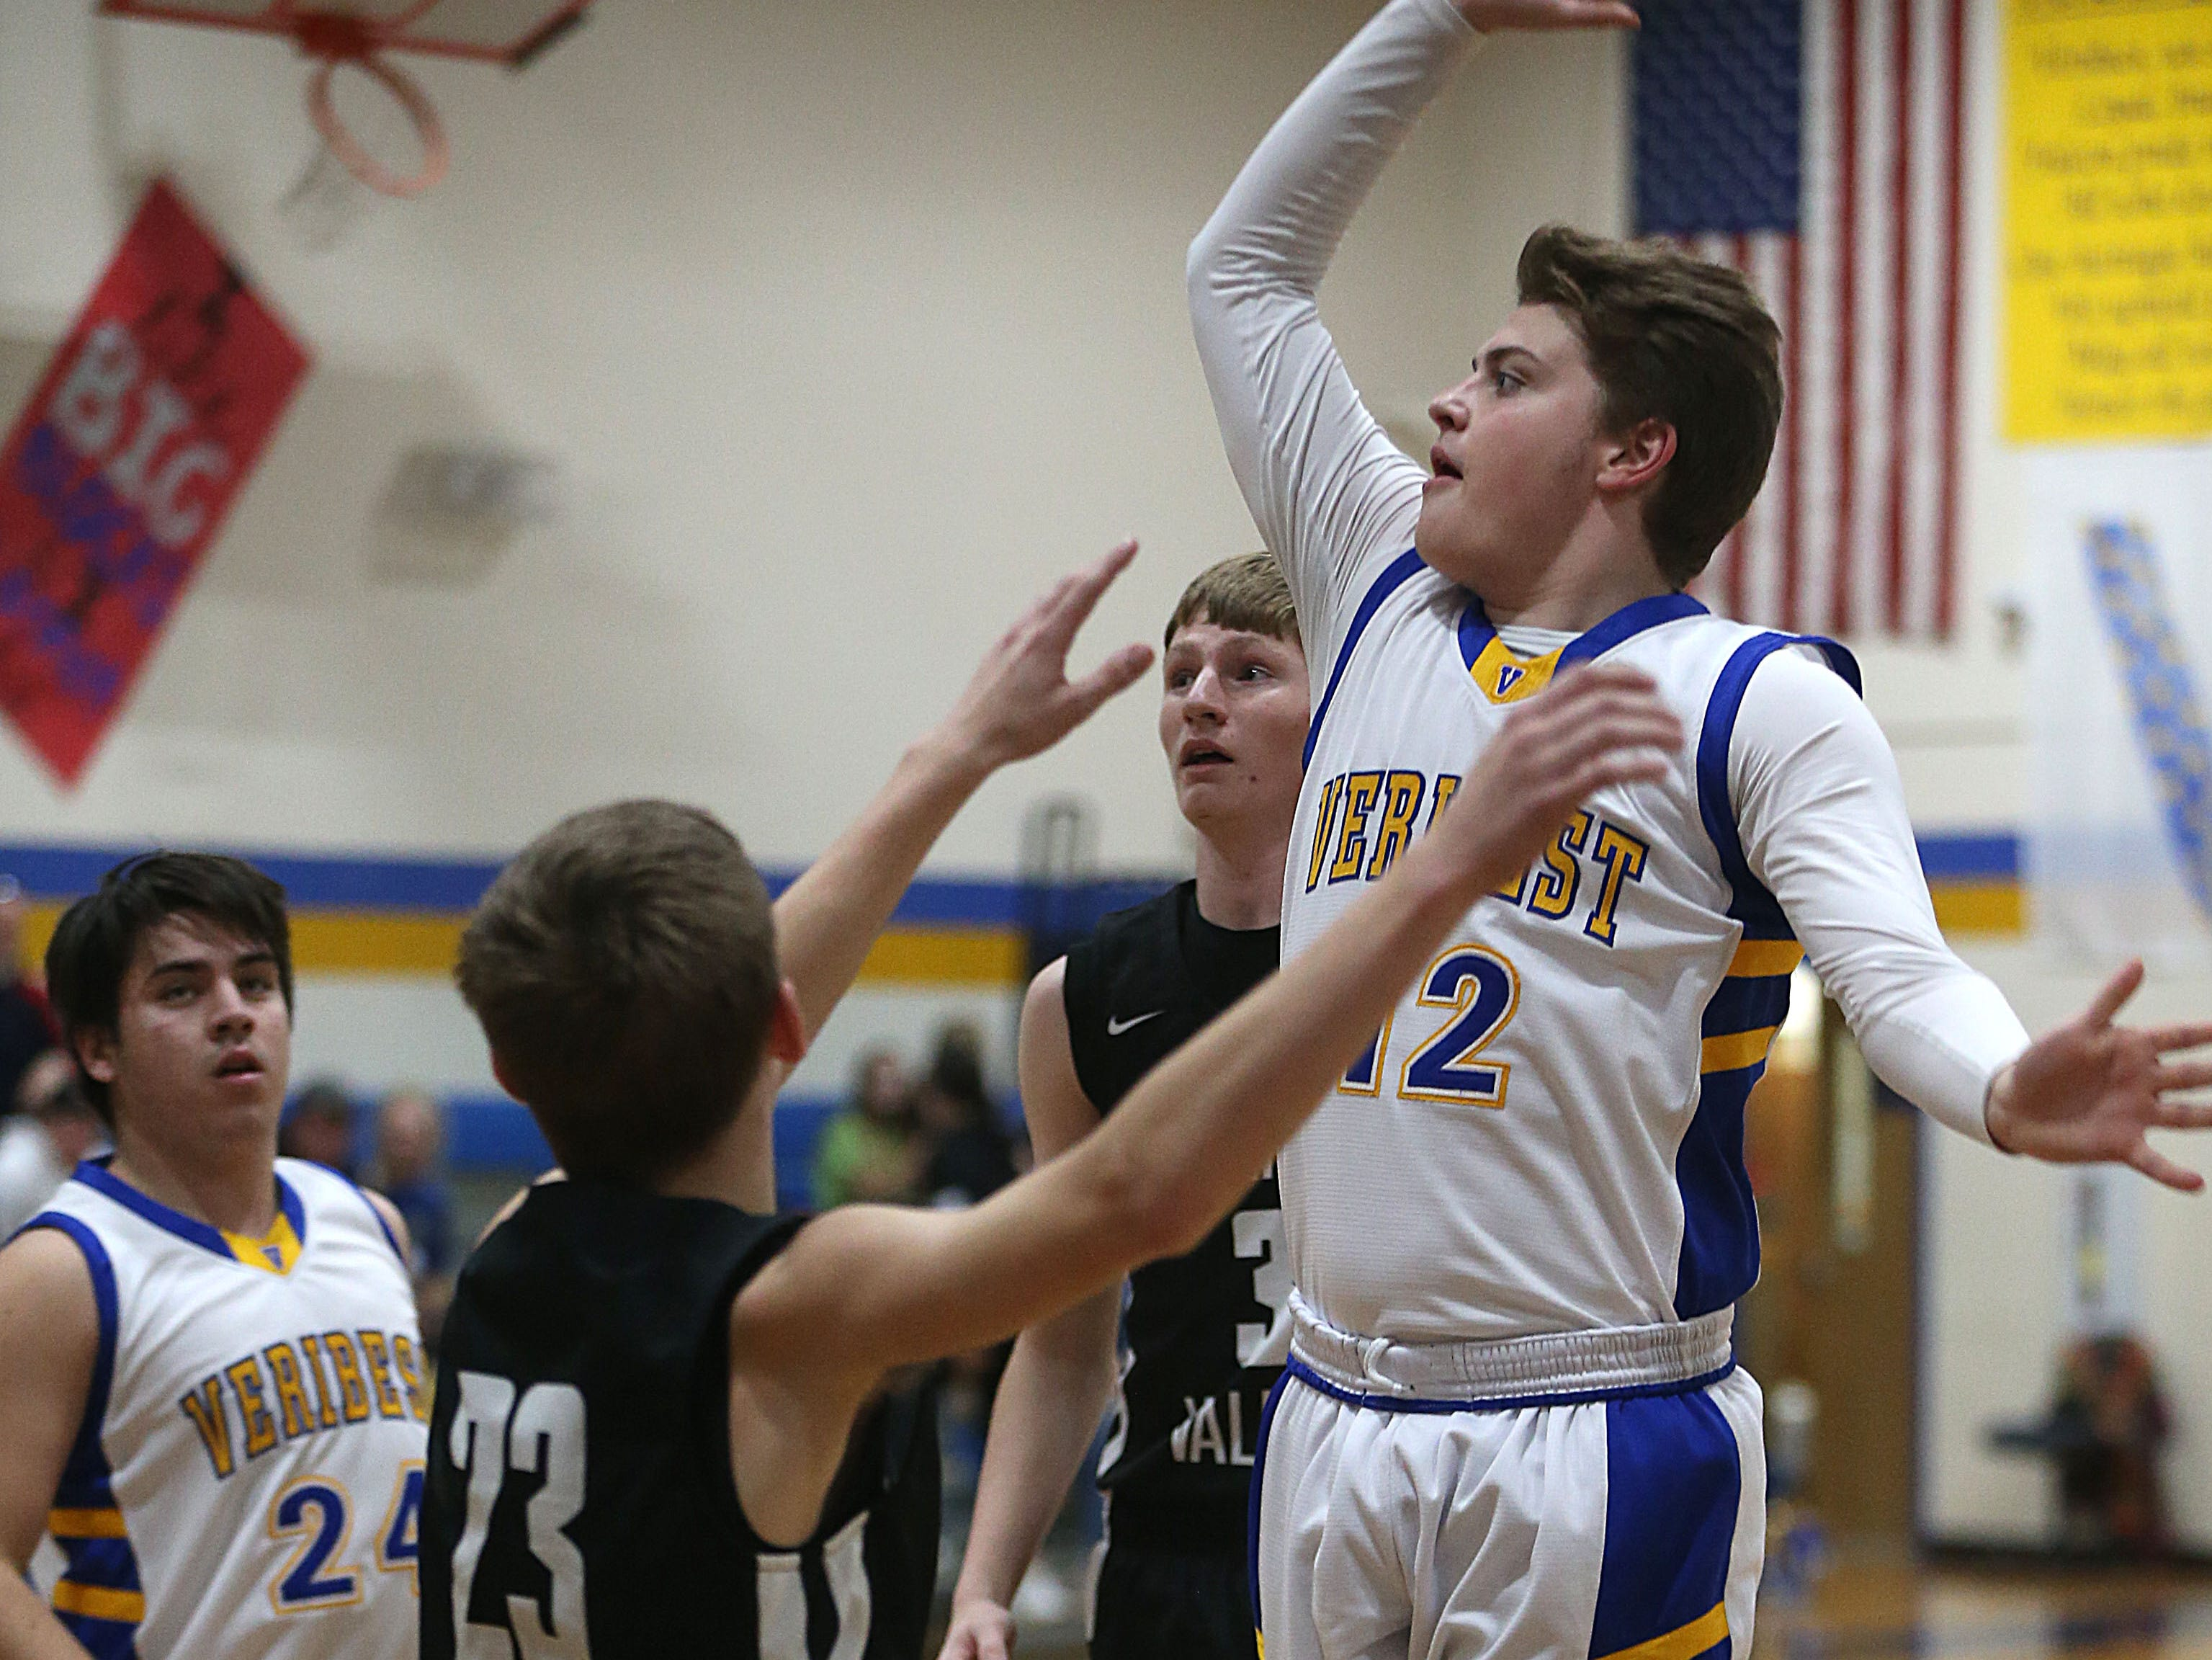 Veribest's Parker Compton (#12) makes a basket Tuesday, Jan. 8, 2019 against Veribest.